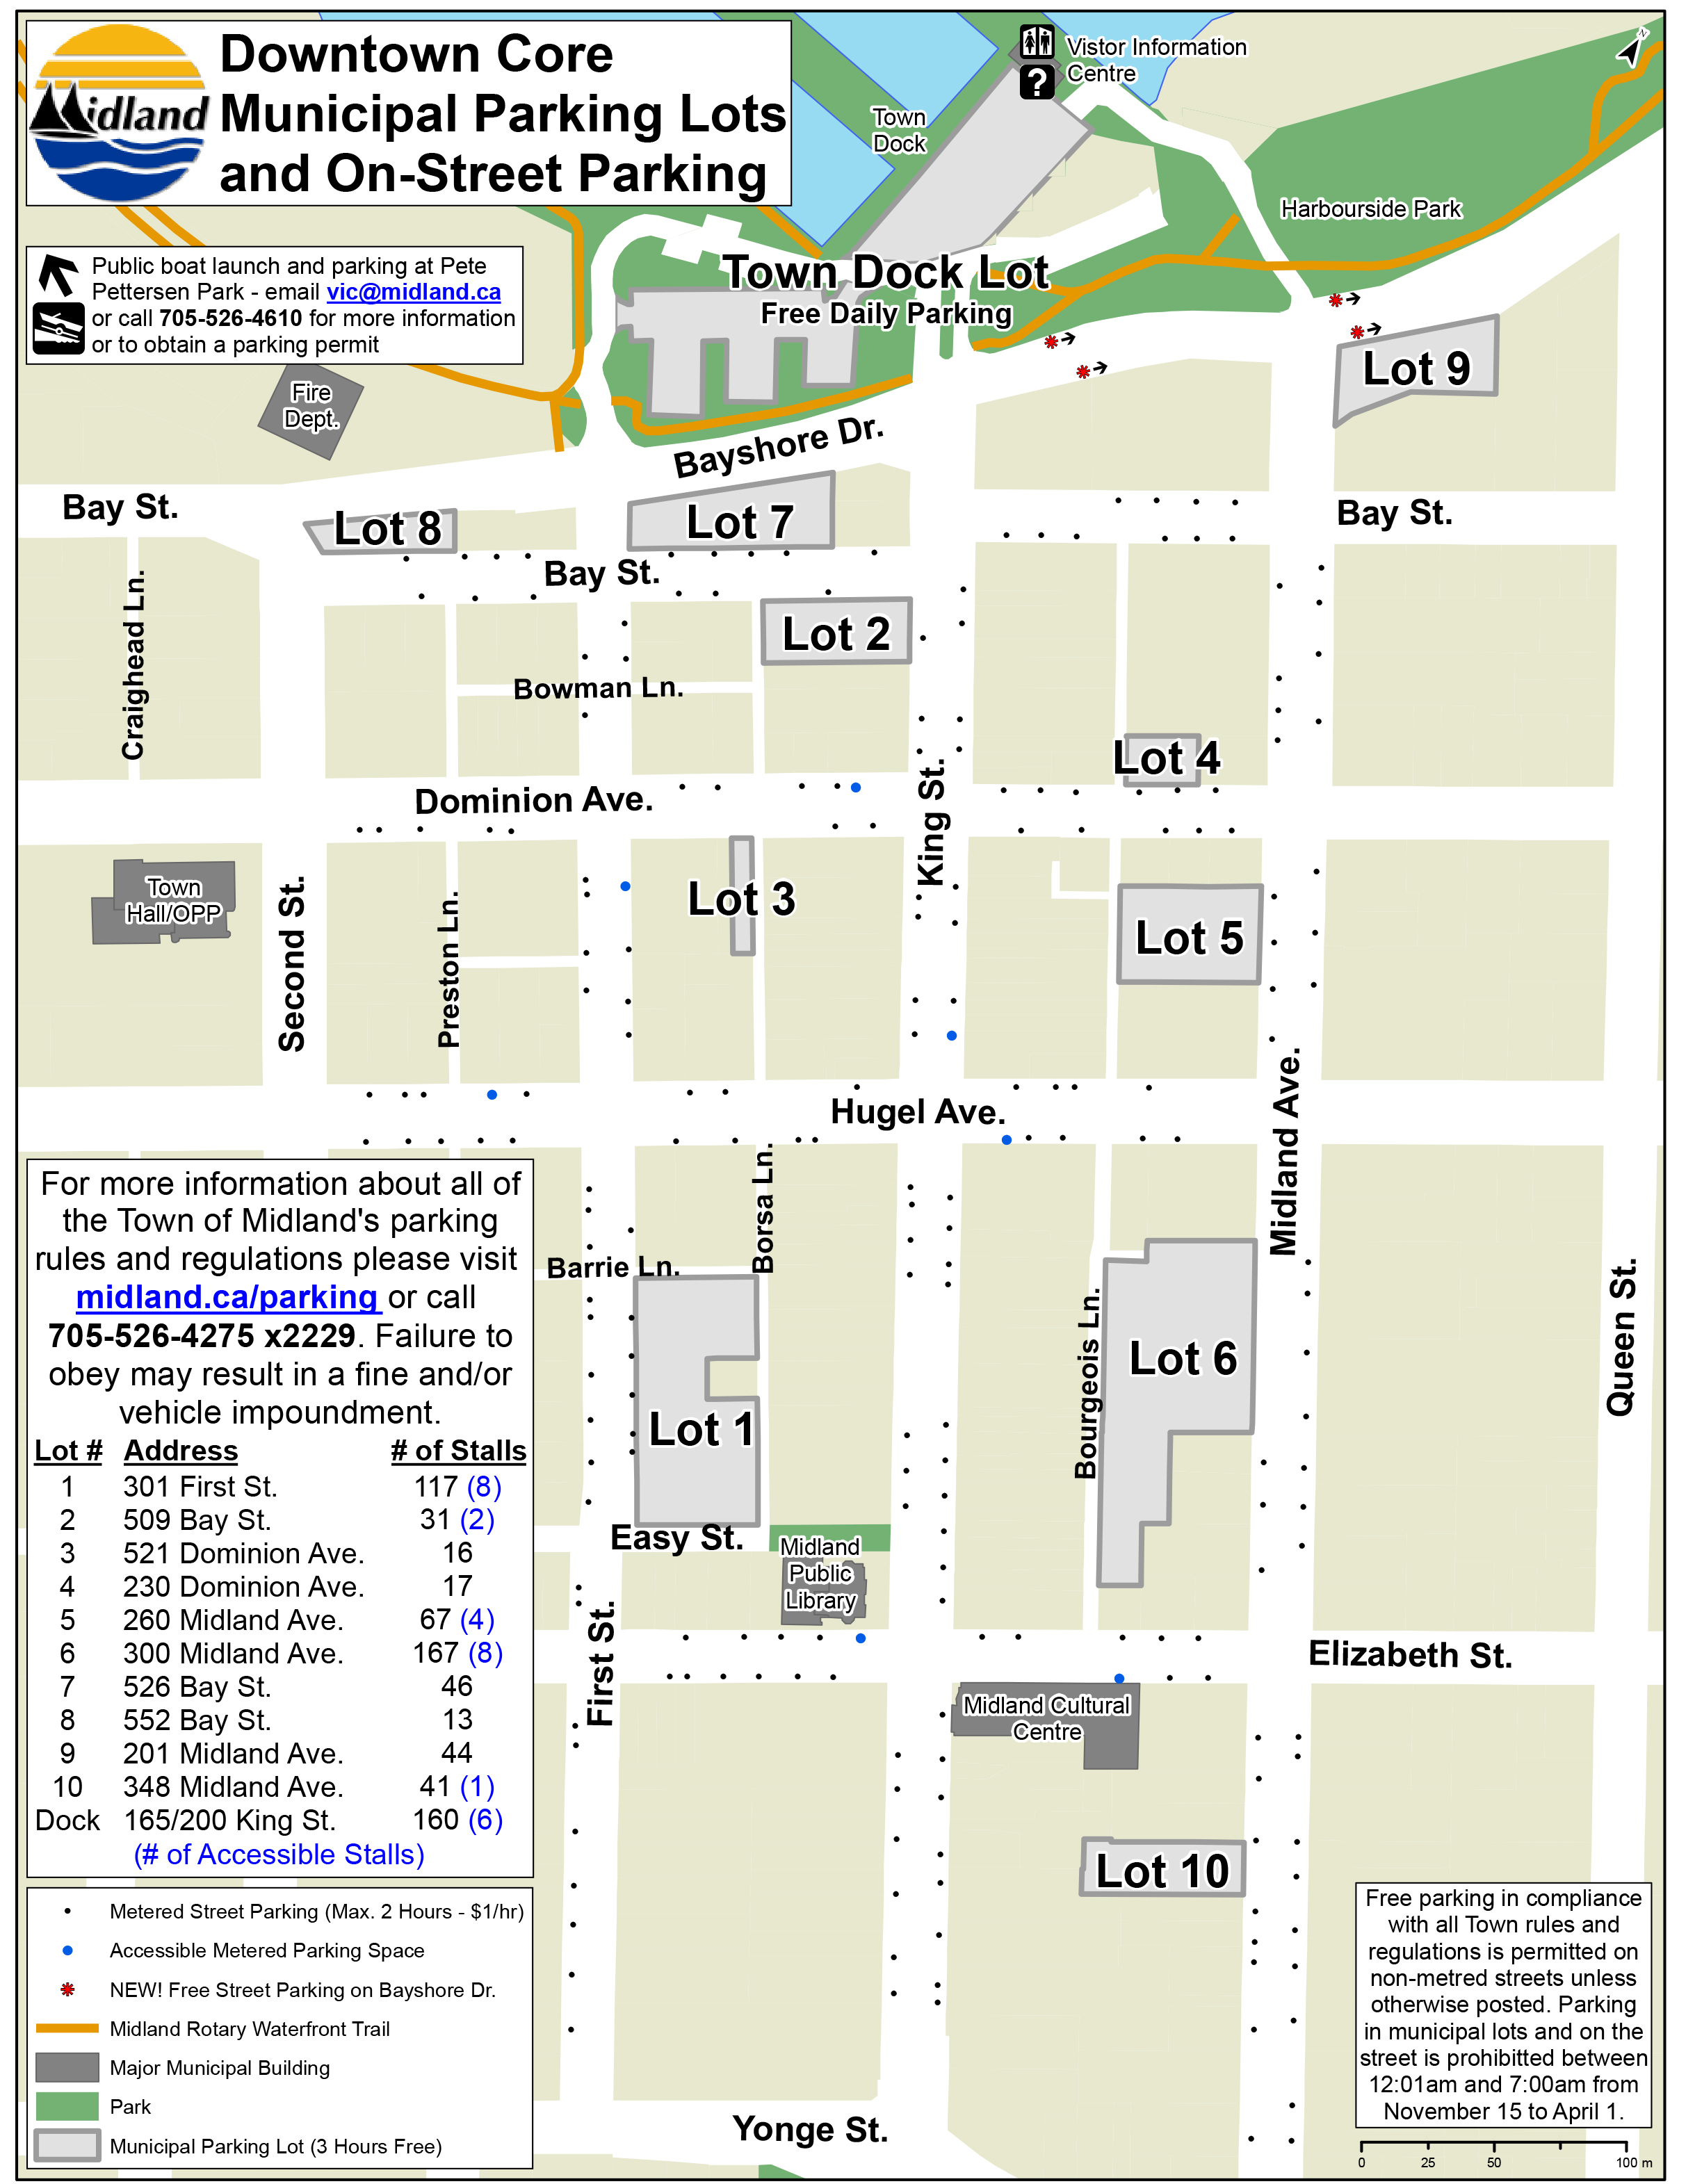 Municipal Parking Map. Click to view larger image